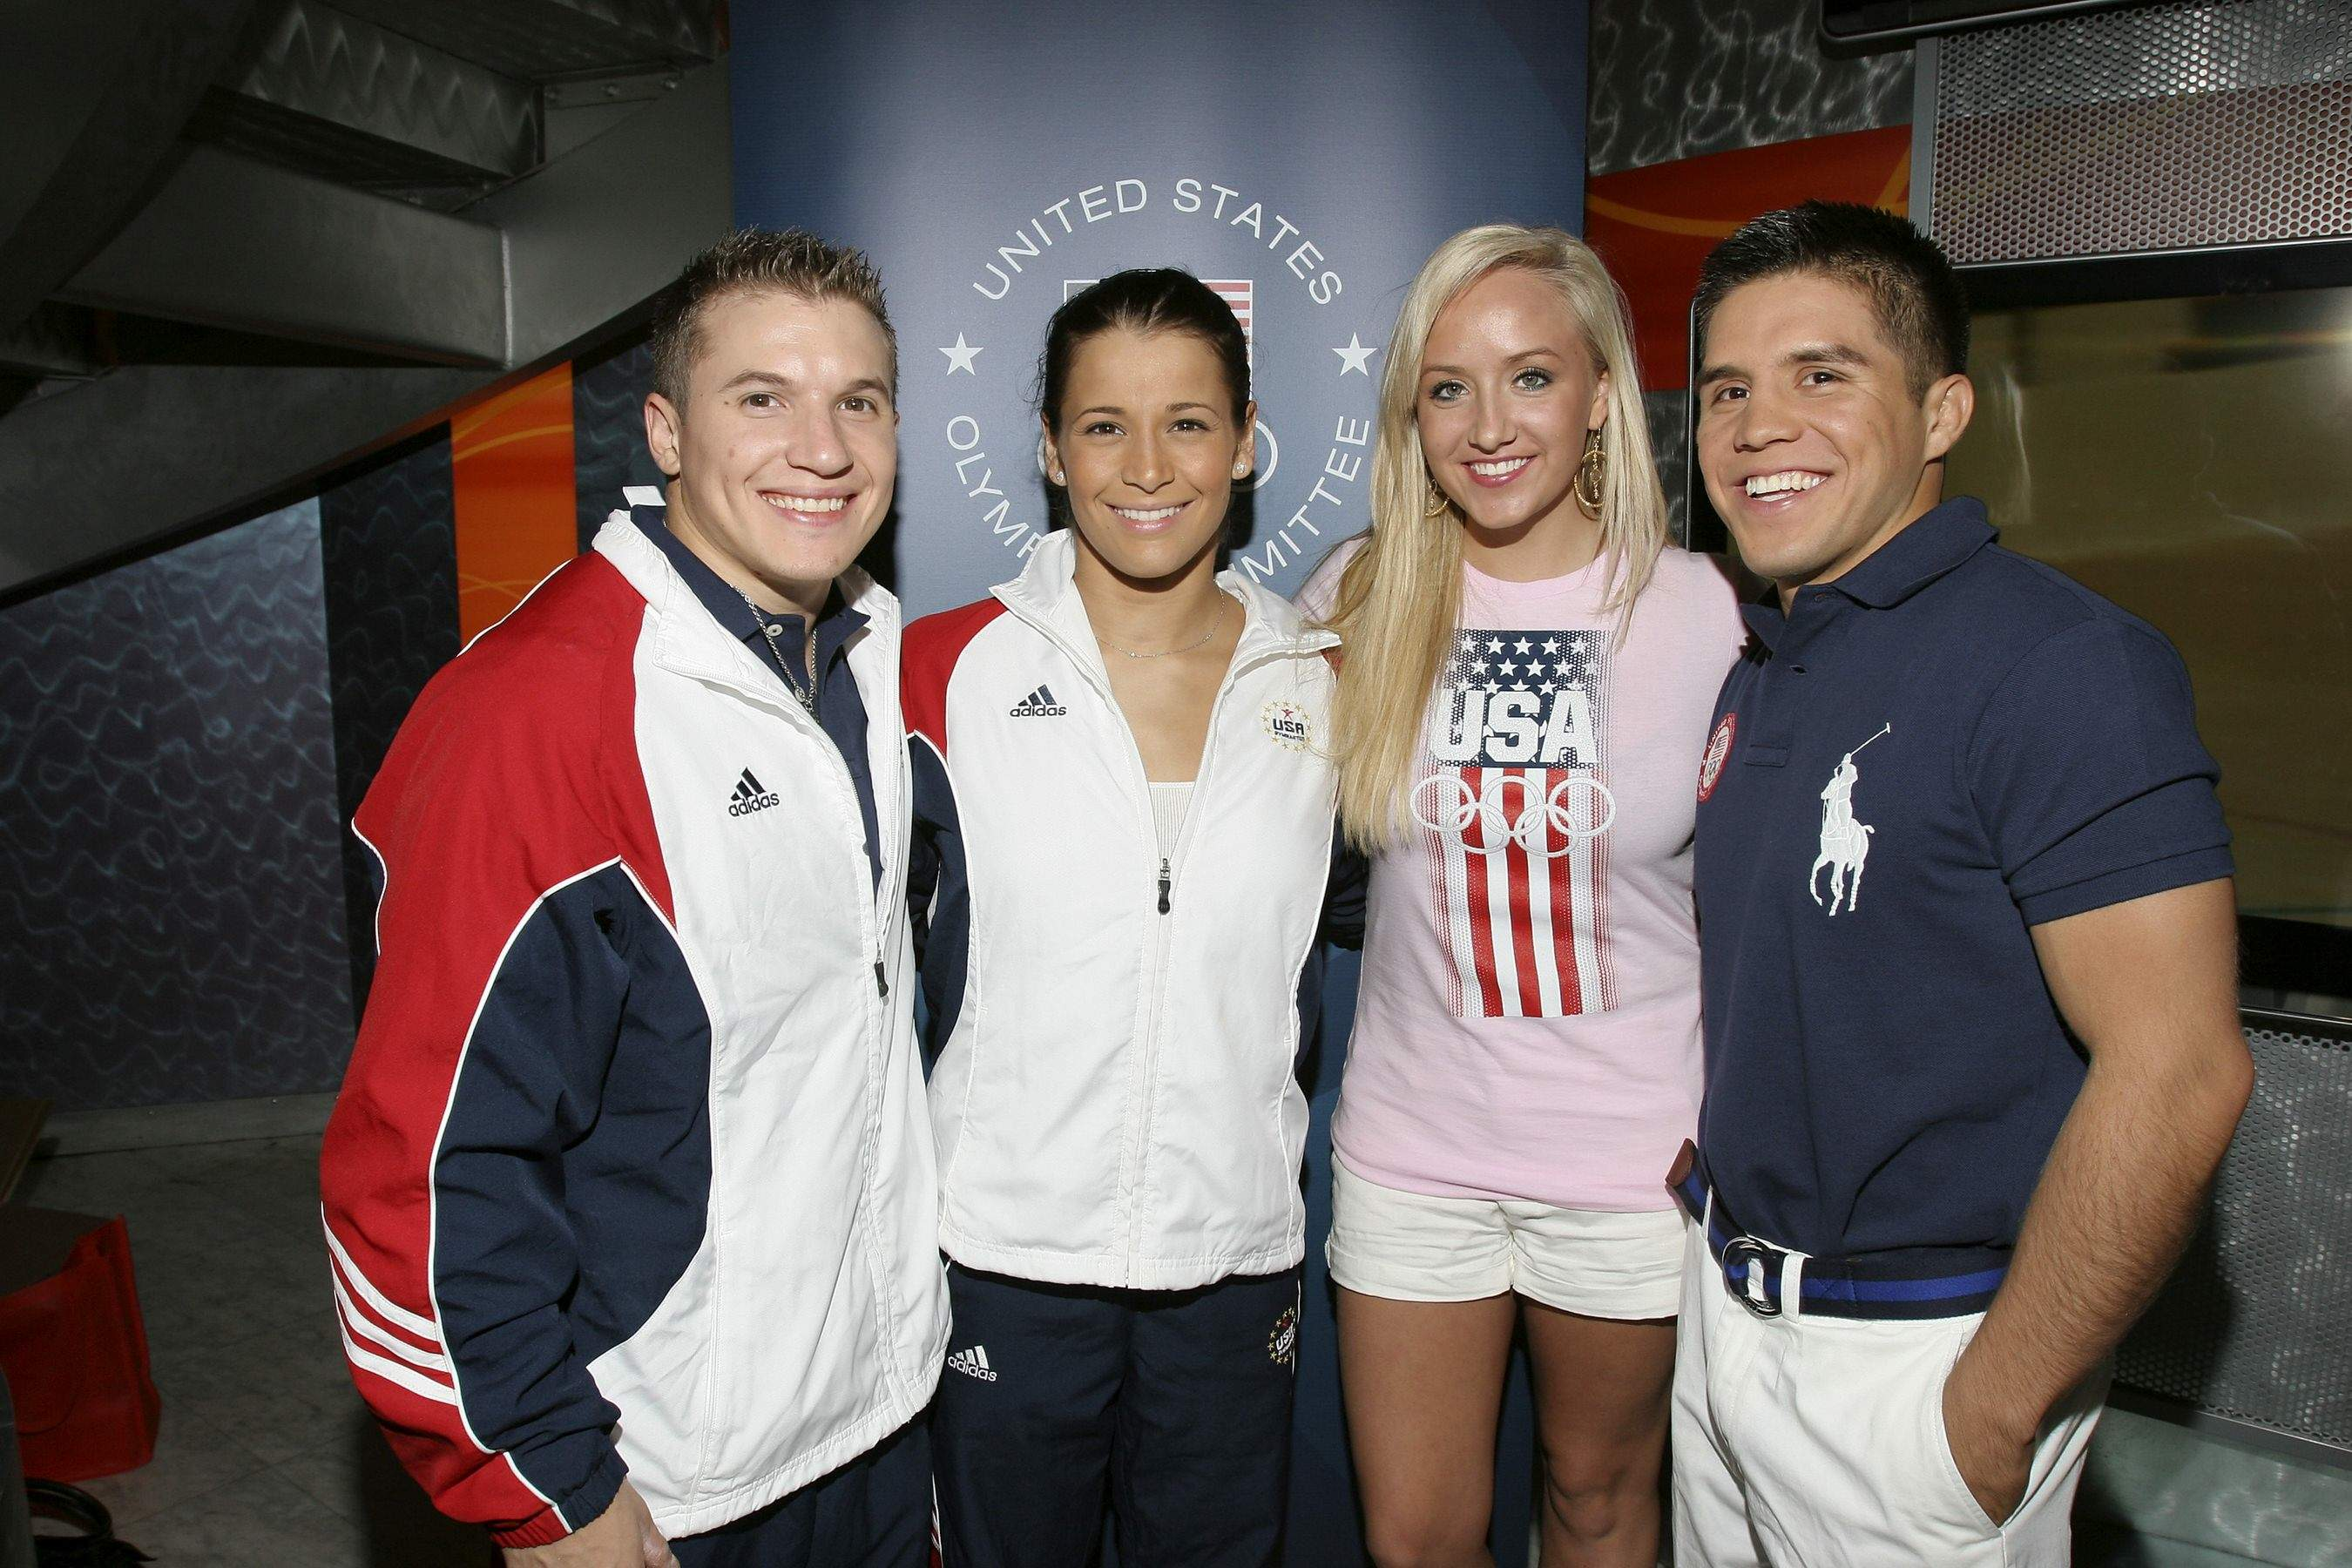 Alicia Sacramone 2011 : nastia-liukin-alicia-sacramone-team-usa-photocall-in-new-york-10